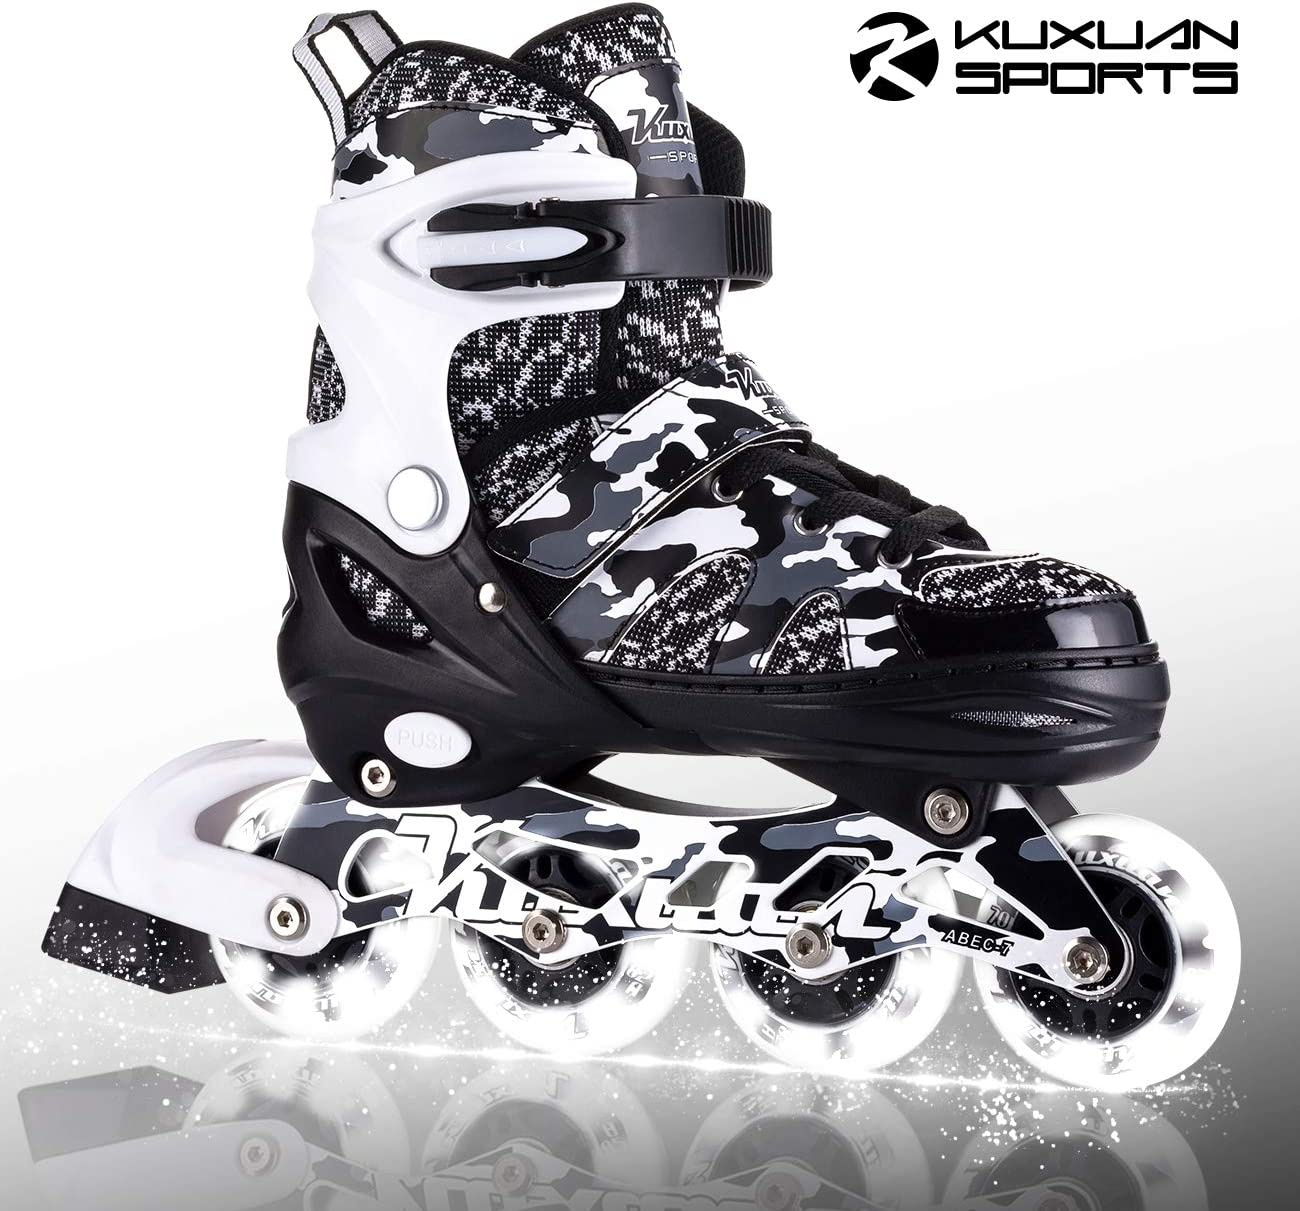 Kuxuan Boys Camo Black Silver Adjustable Inline Skates with Light up Wheels, Fun Illuminating Roller Blading for Kids Girls Youth